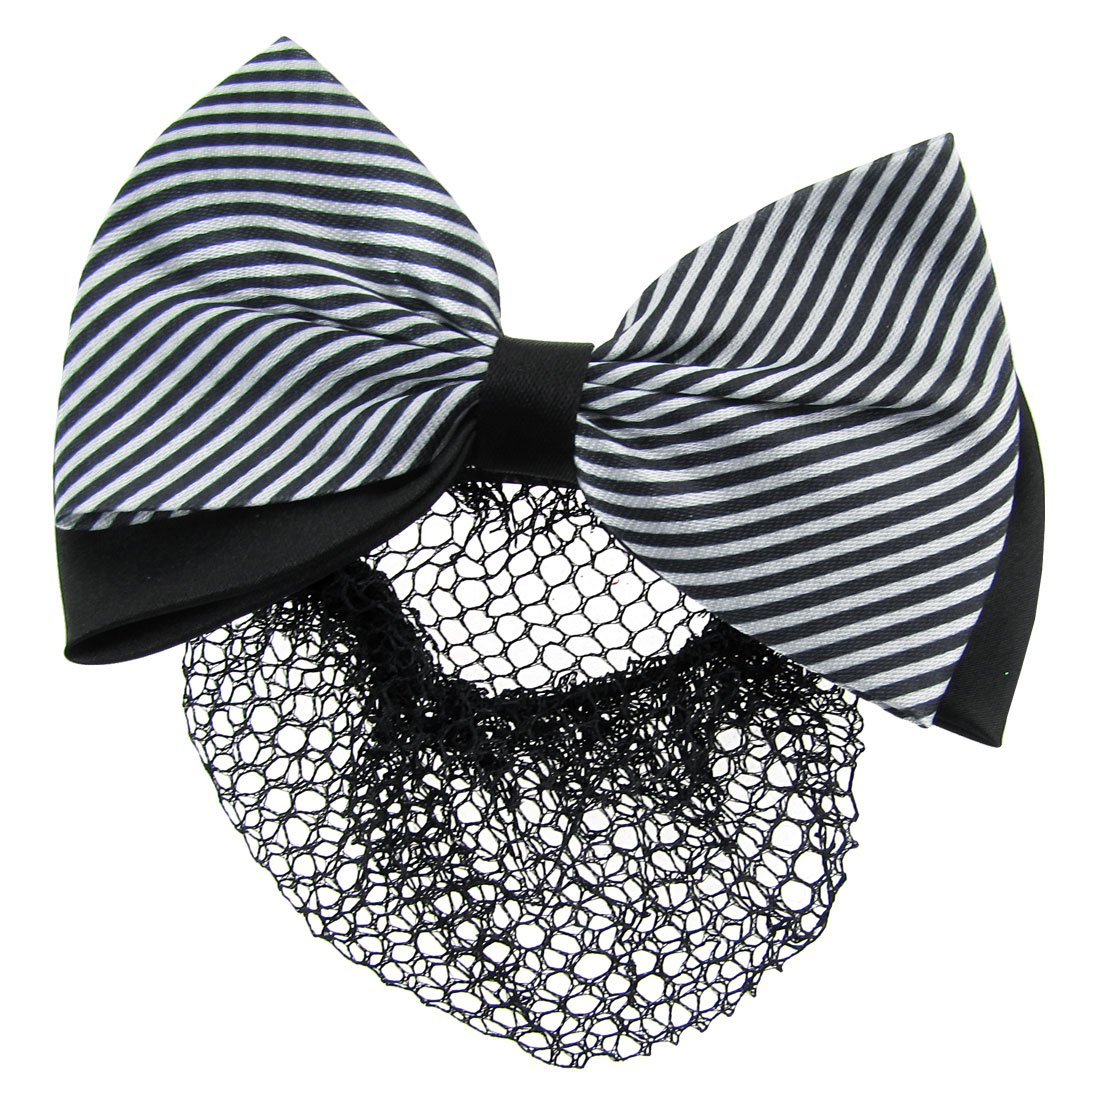 uxcell Black White Diagonal Striped Double Bow Barrette Hair Clip Bun Cover w Mesh Snood Bun Net US-SA-AJD-09248